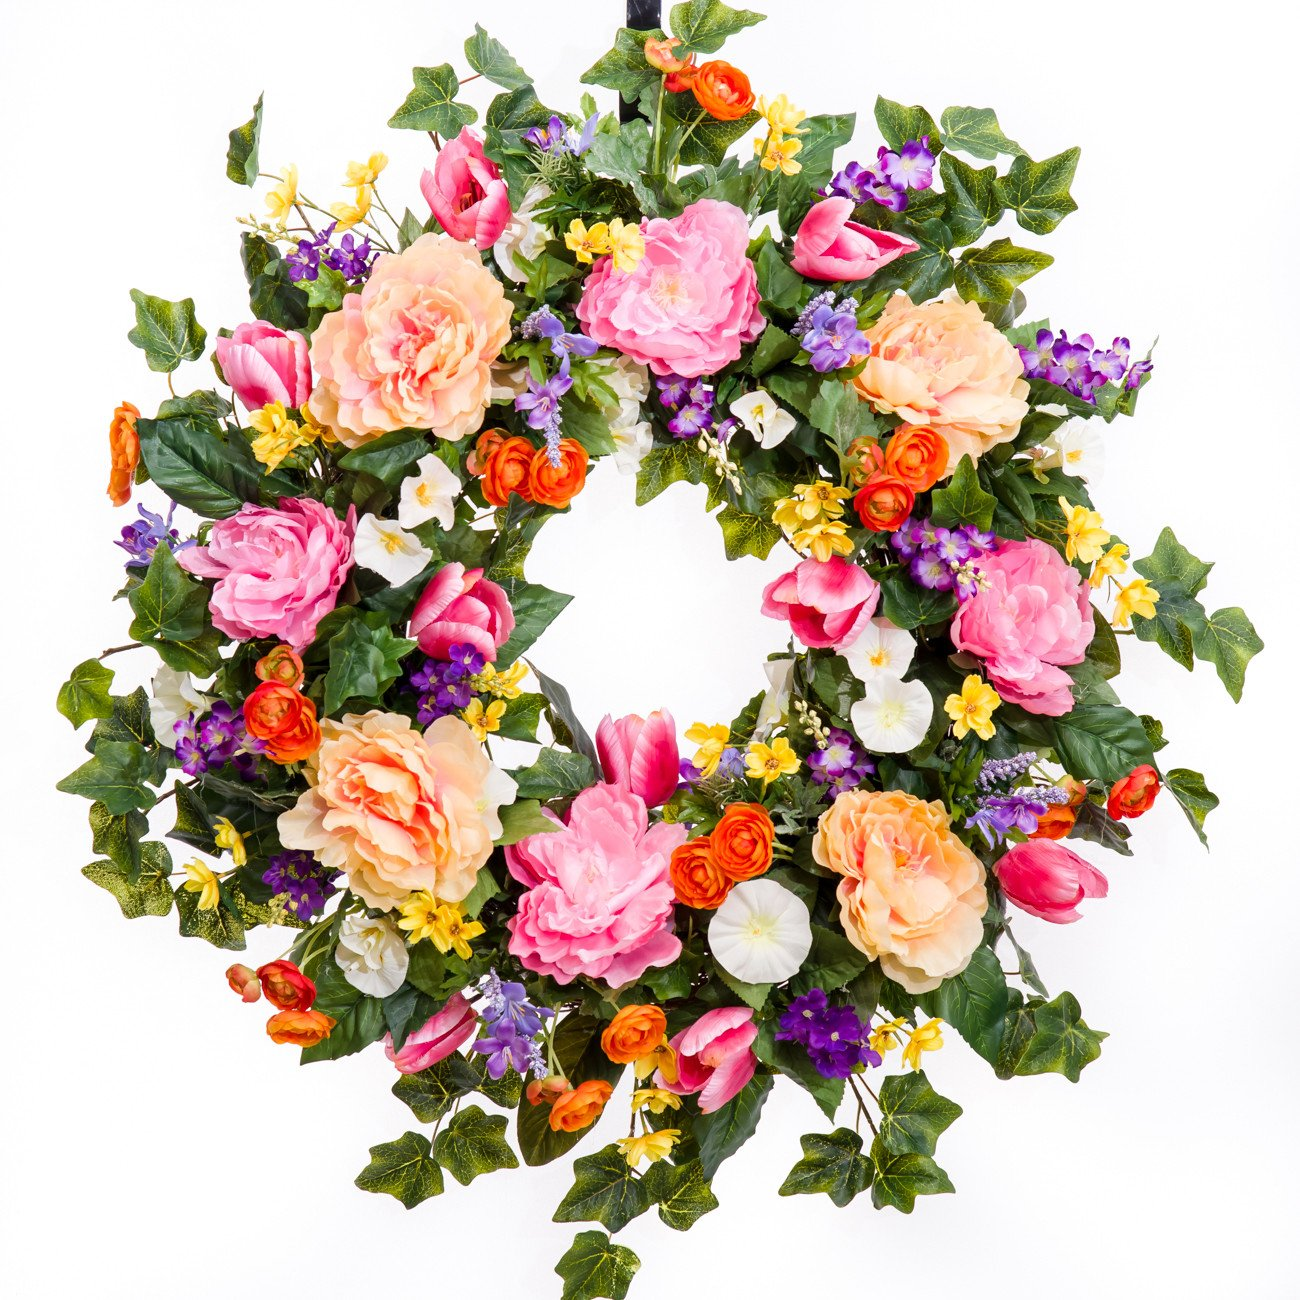 All Dressed Up Spring Wreath, Summer Wreath, Everyday Wreath, Silk Wreath (26 inch) by Darby Creek Trading